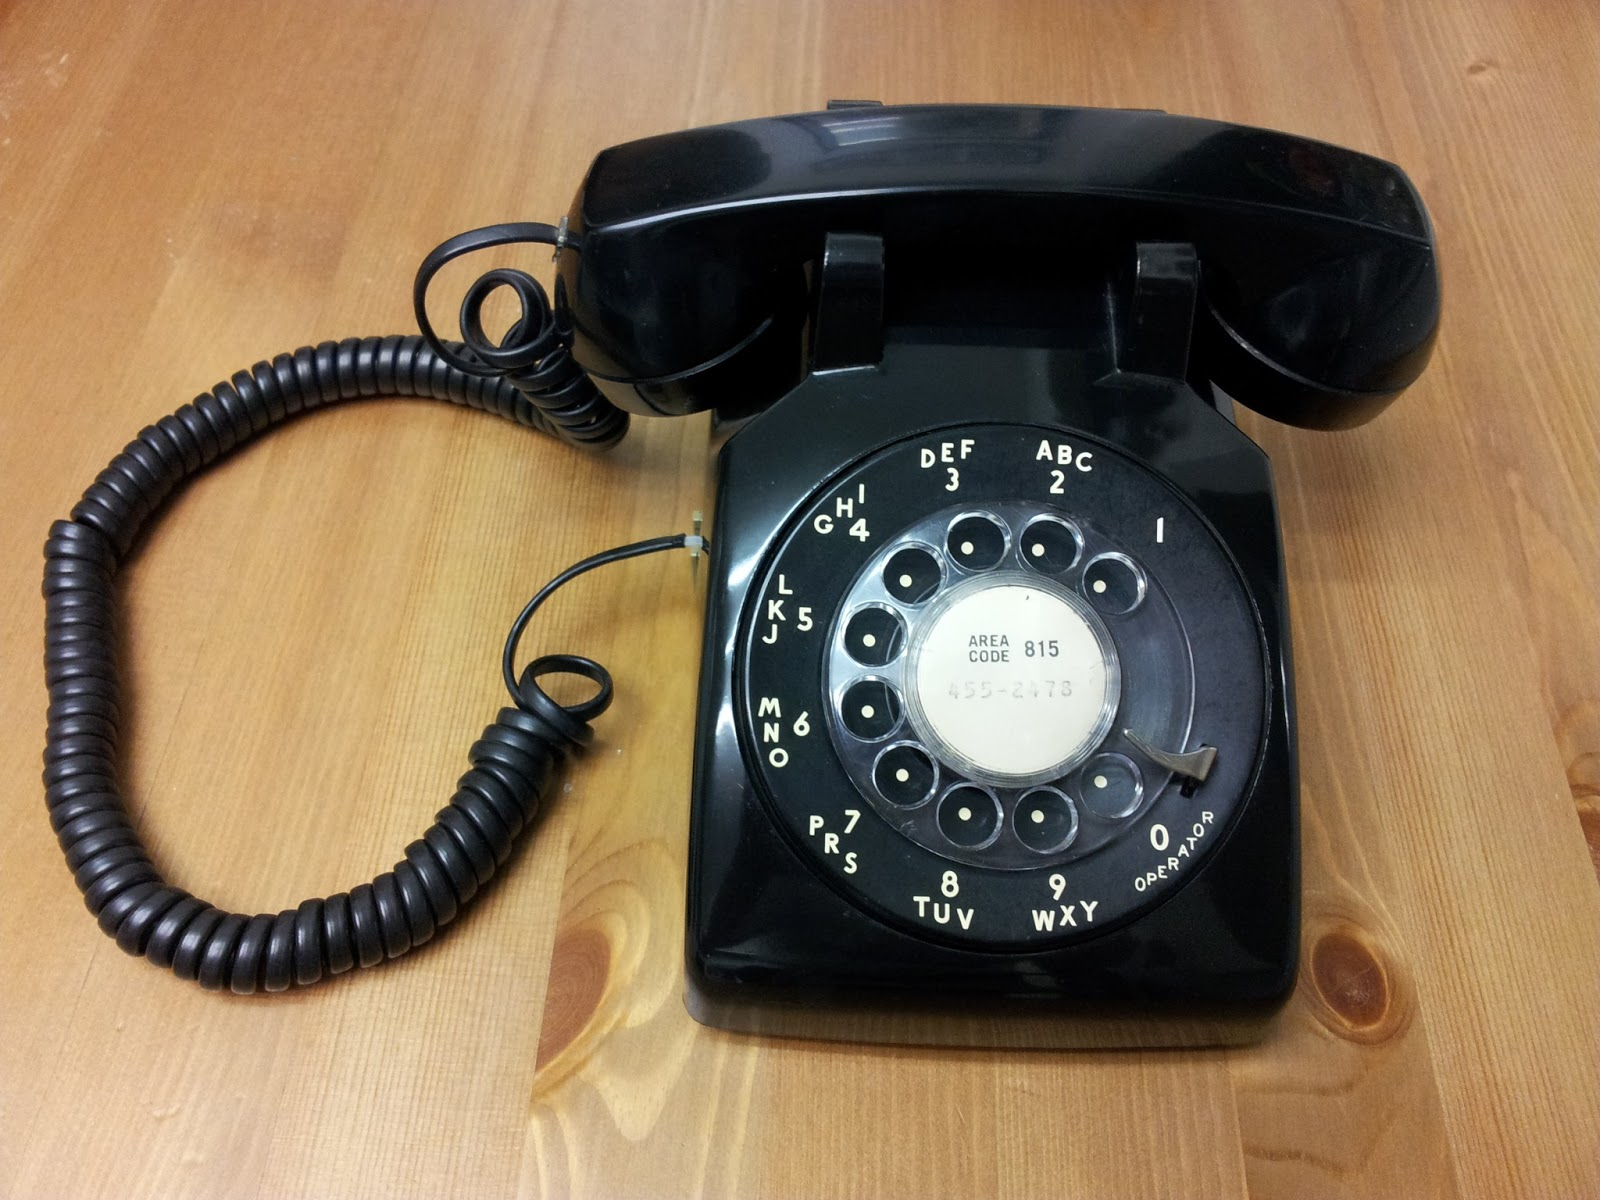 Updating Your Rotary Dial Phone for the Digital Age | DMC, Inc.